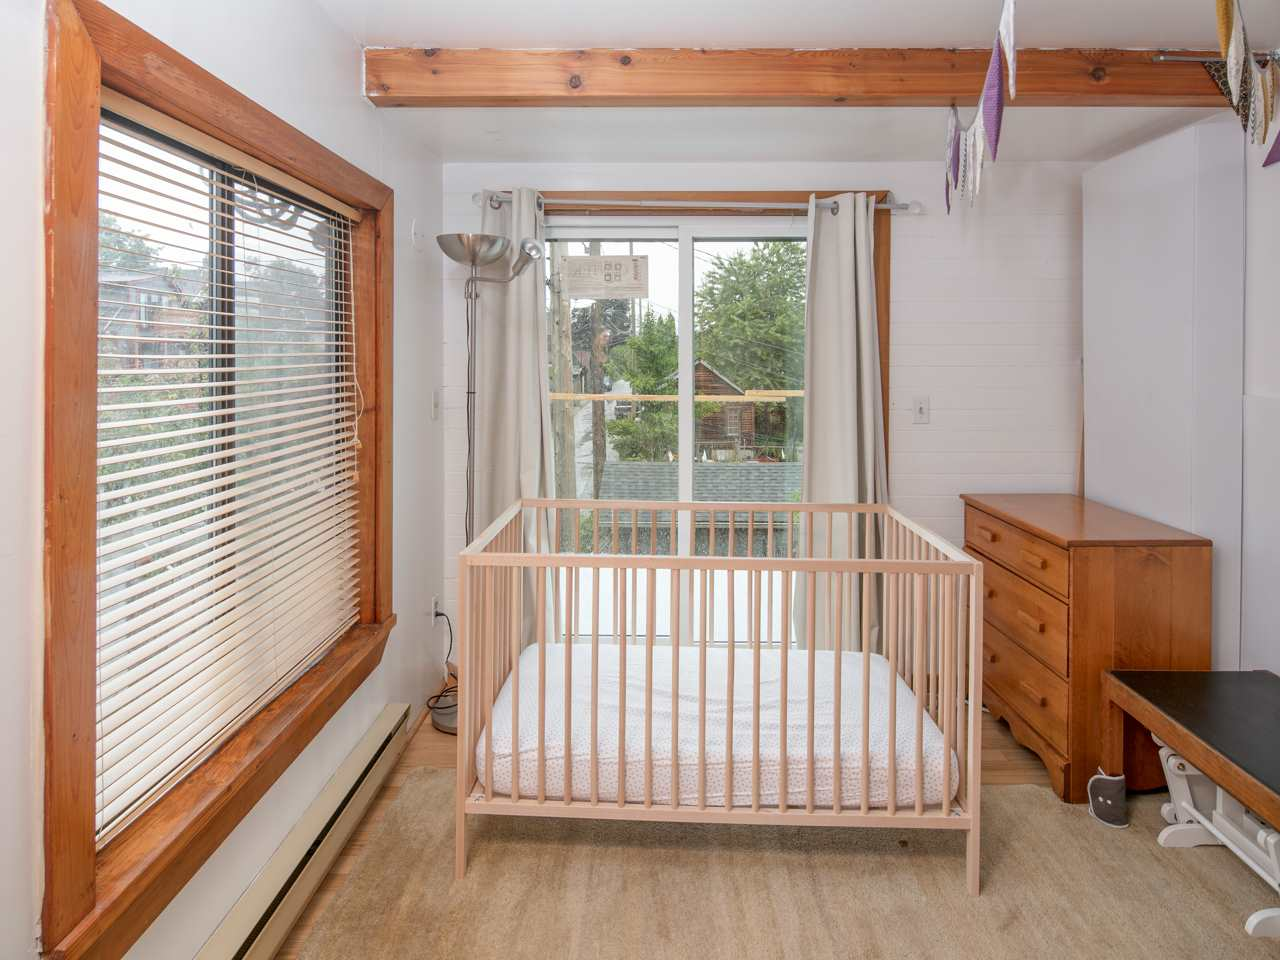 "Photo 7: 730 HAWKS Avenue in Vancouver: Mount Pleasant VE Townhouse for sale in ""Hawks Green"" (Vancouver East)  : MLS® # R2179039"